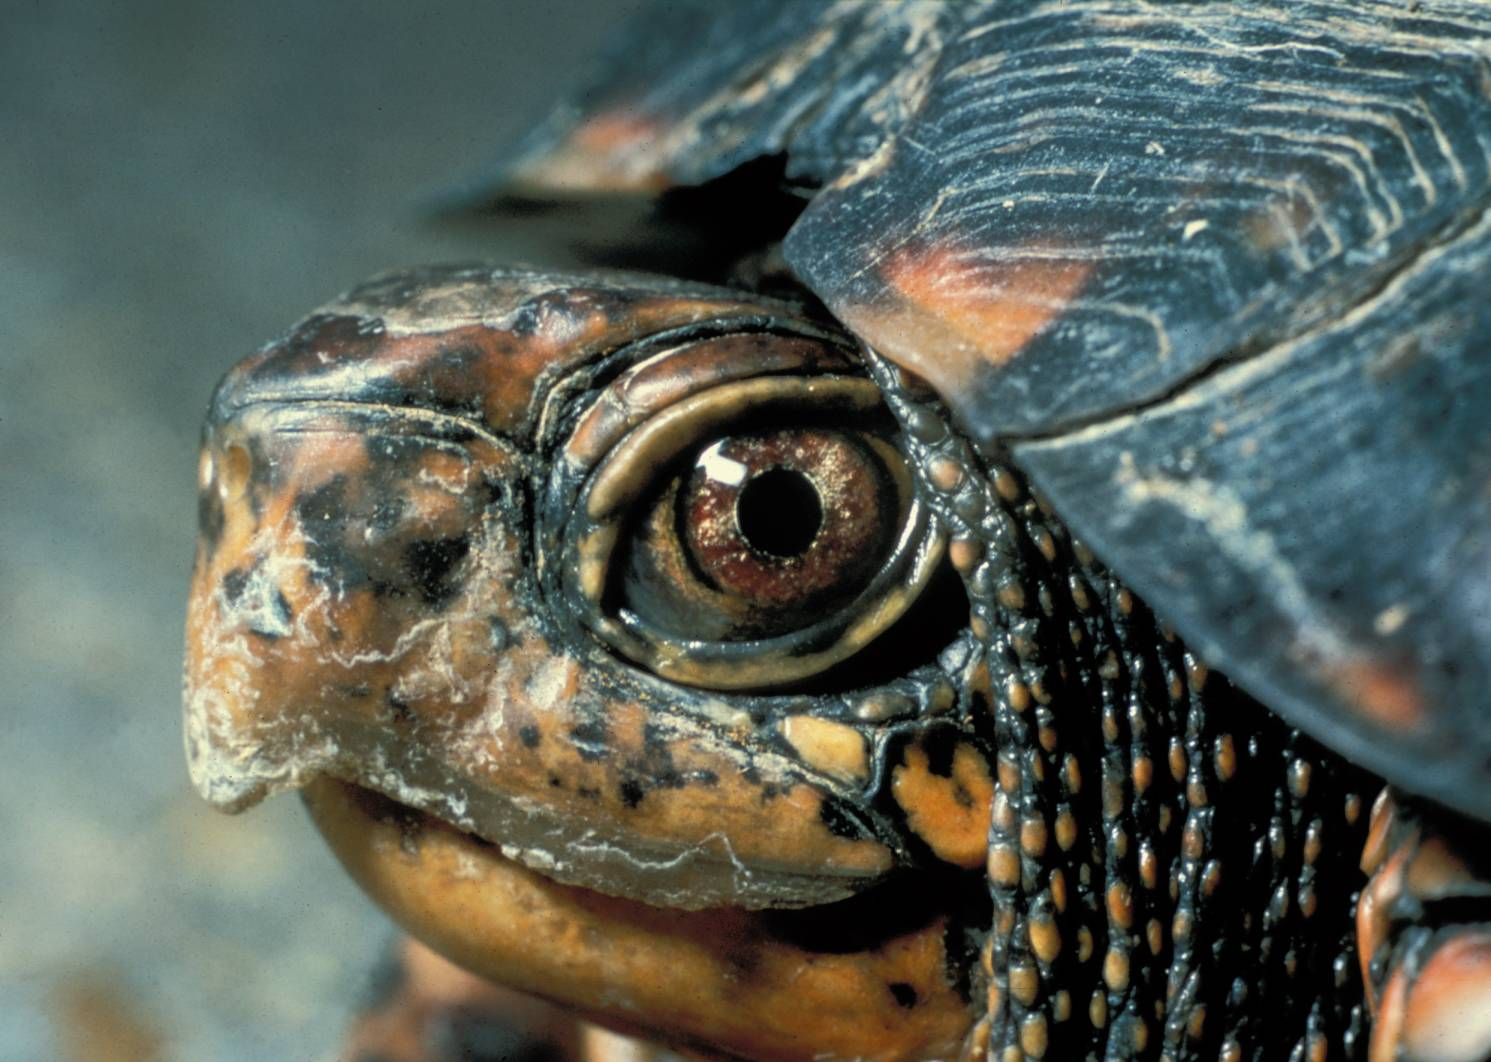 Eastern_Box_Turtle_Head